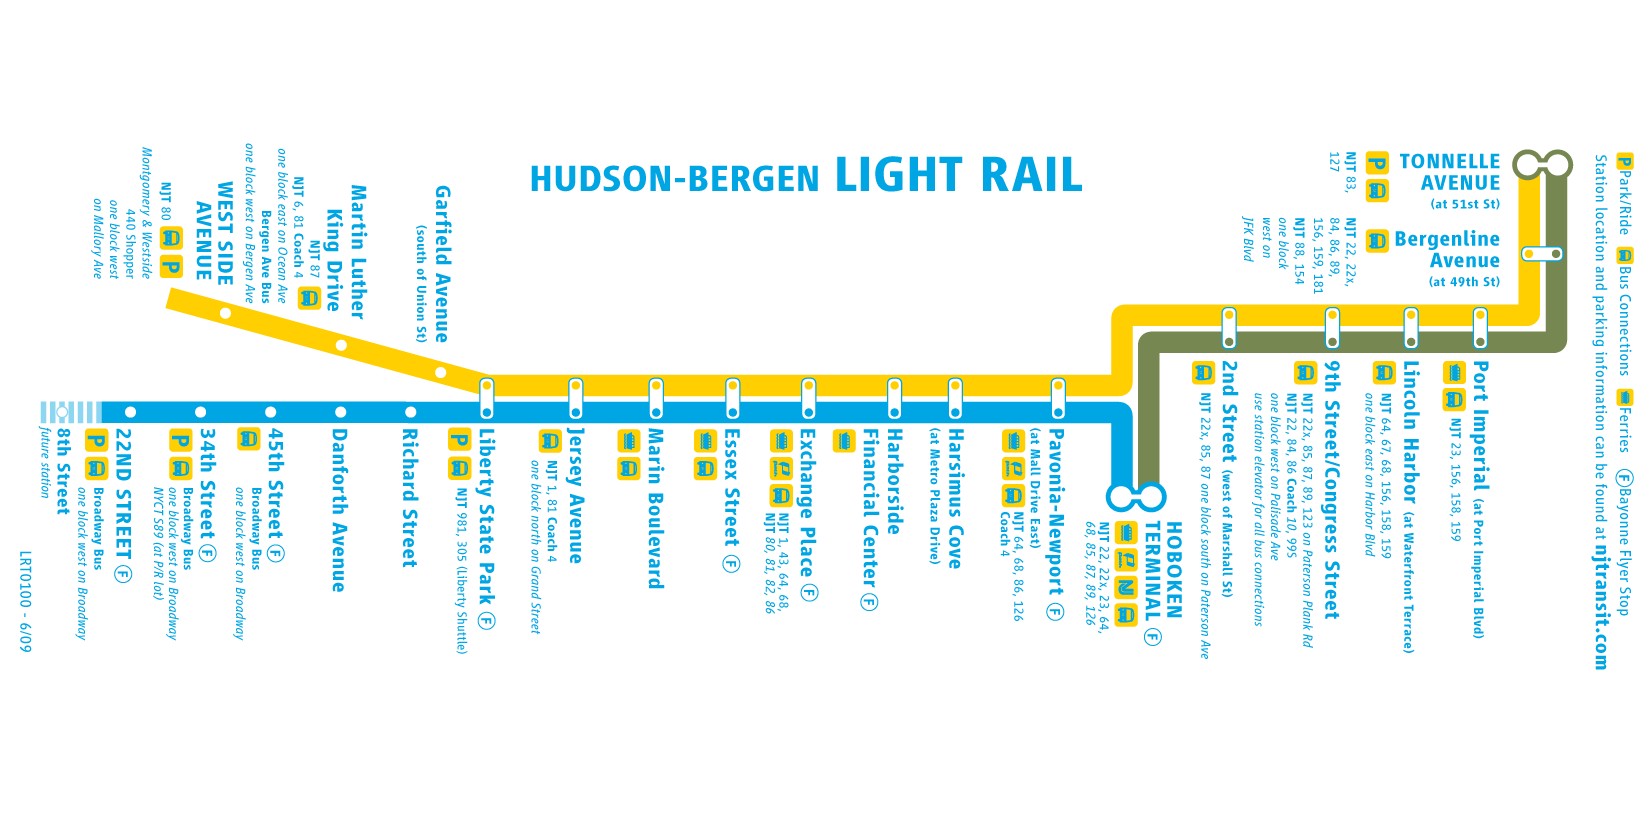 Light Rail Nj Map LIGHT RAIL MAP NJ | Hoboken Resources & Services | Light rail